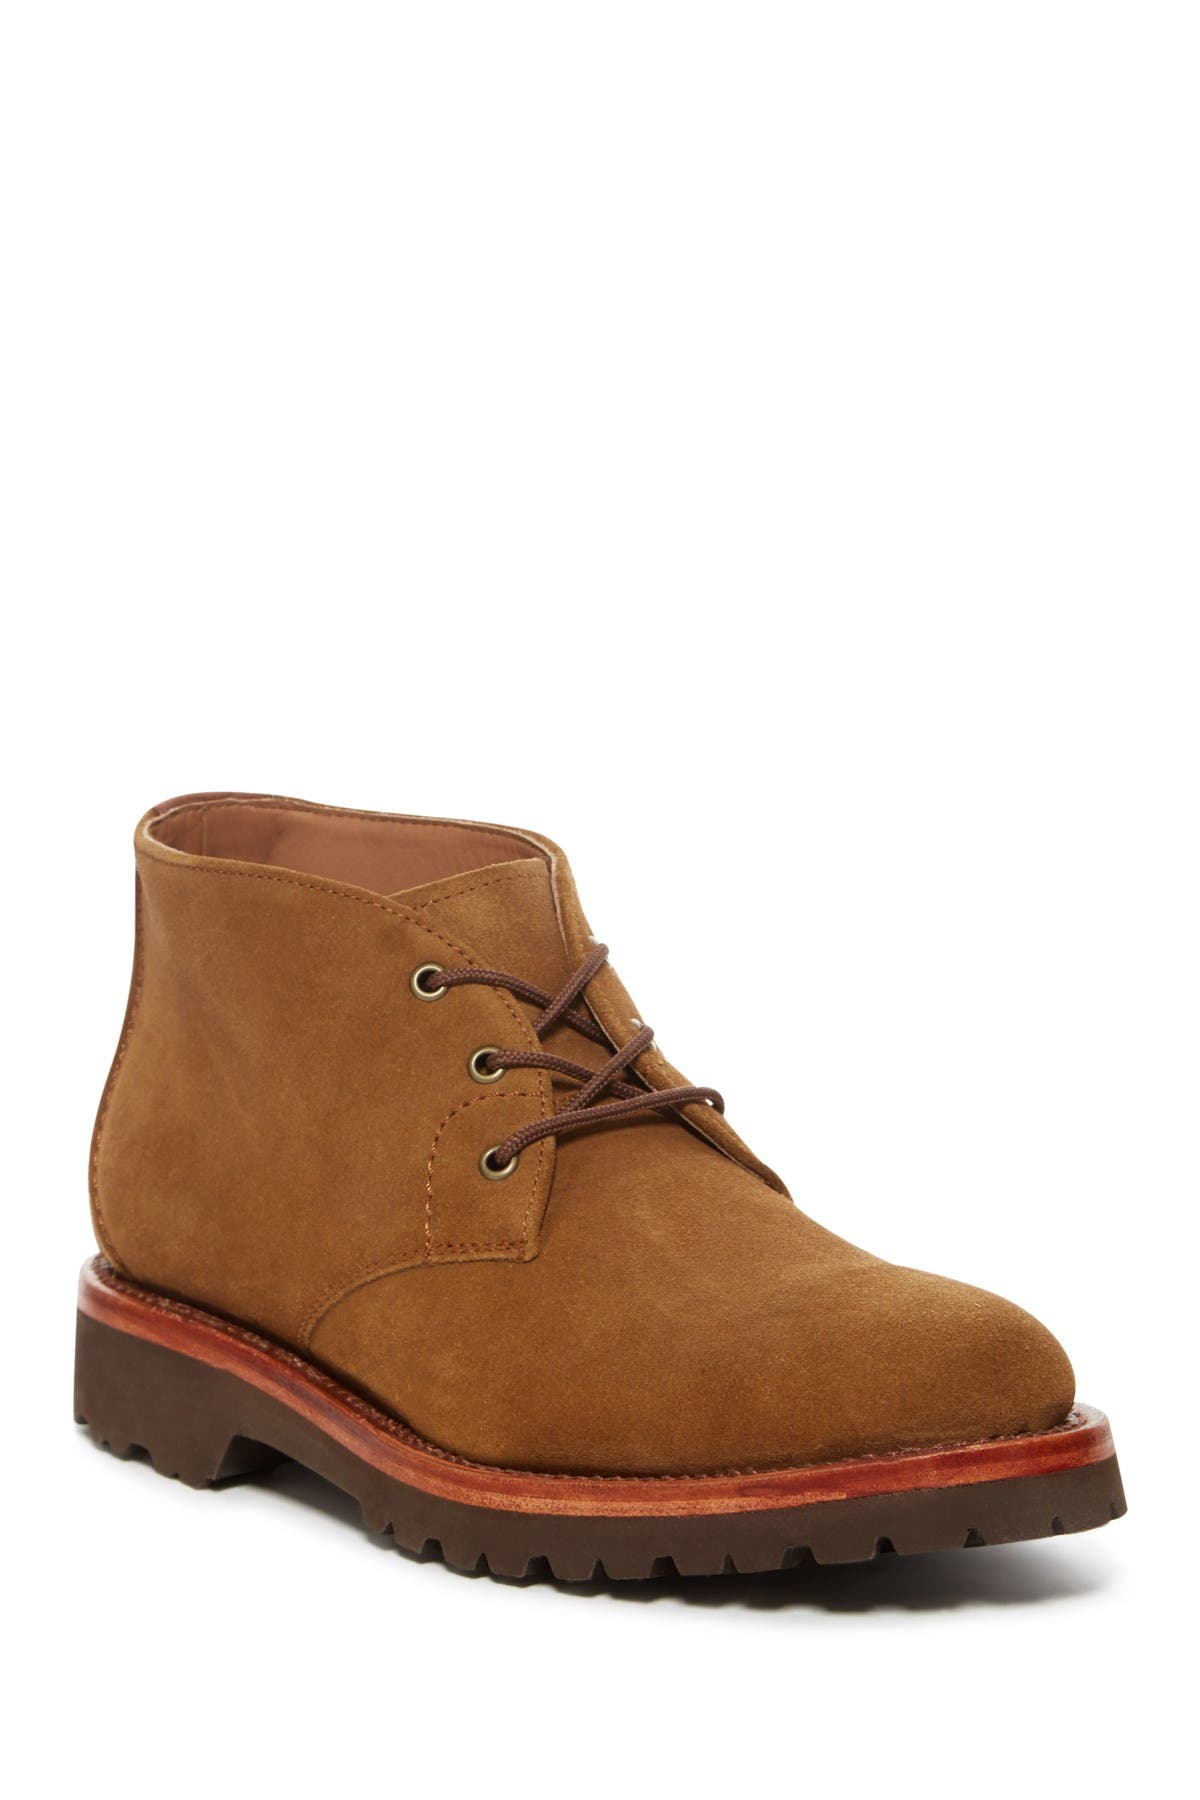 Image of Trask Gulch 2.0 Suede Boot